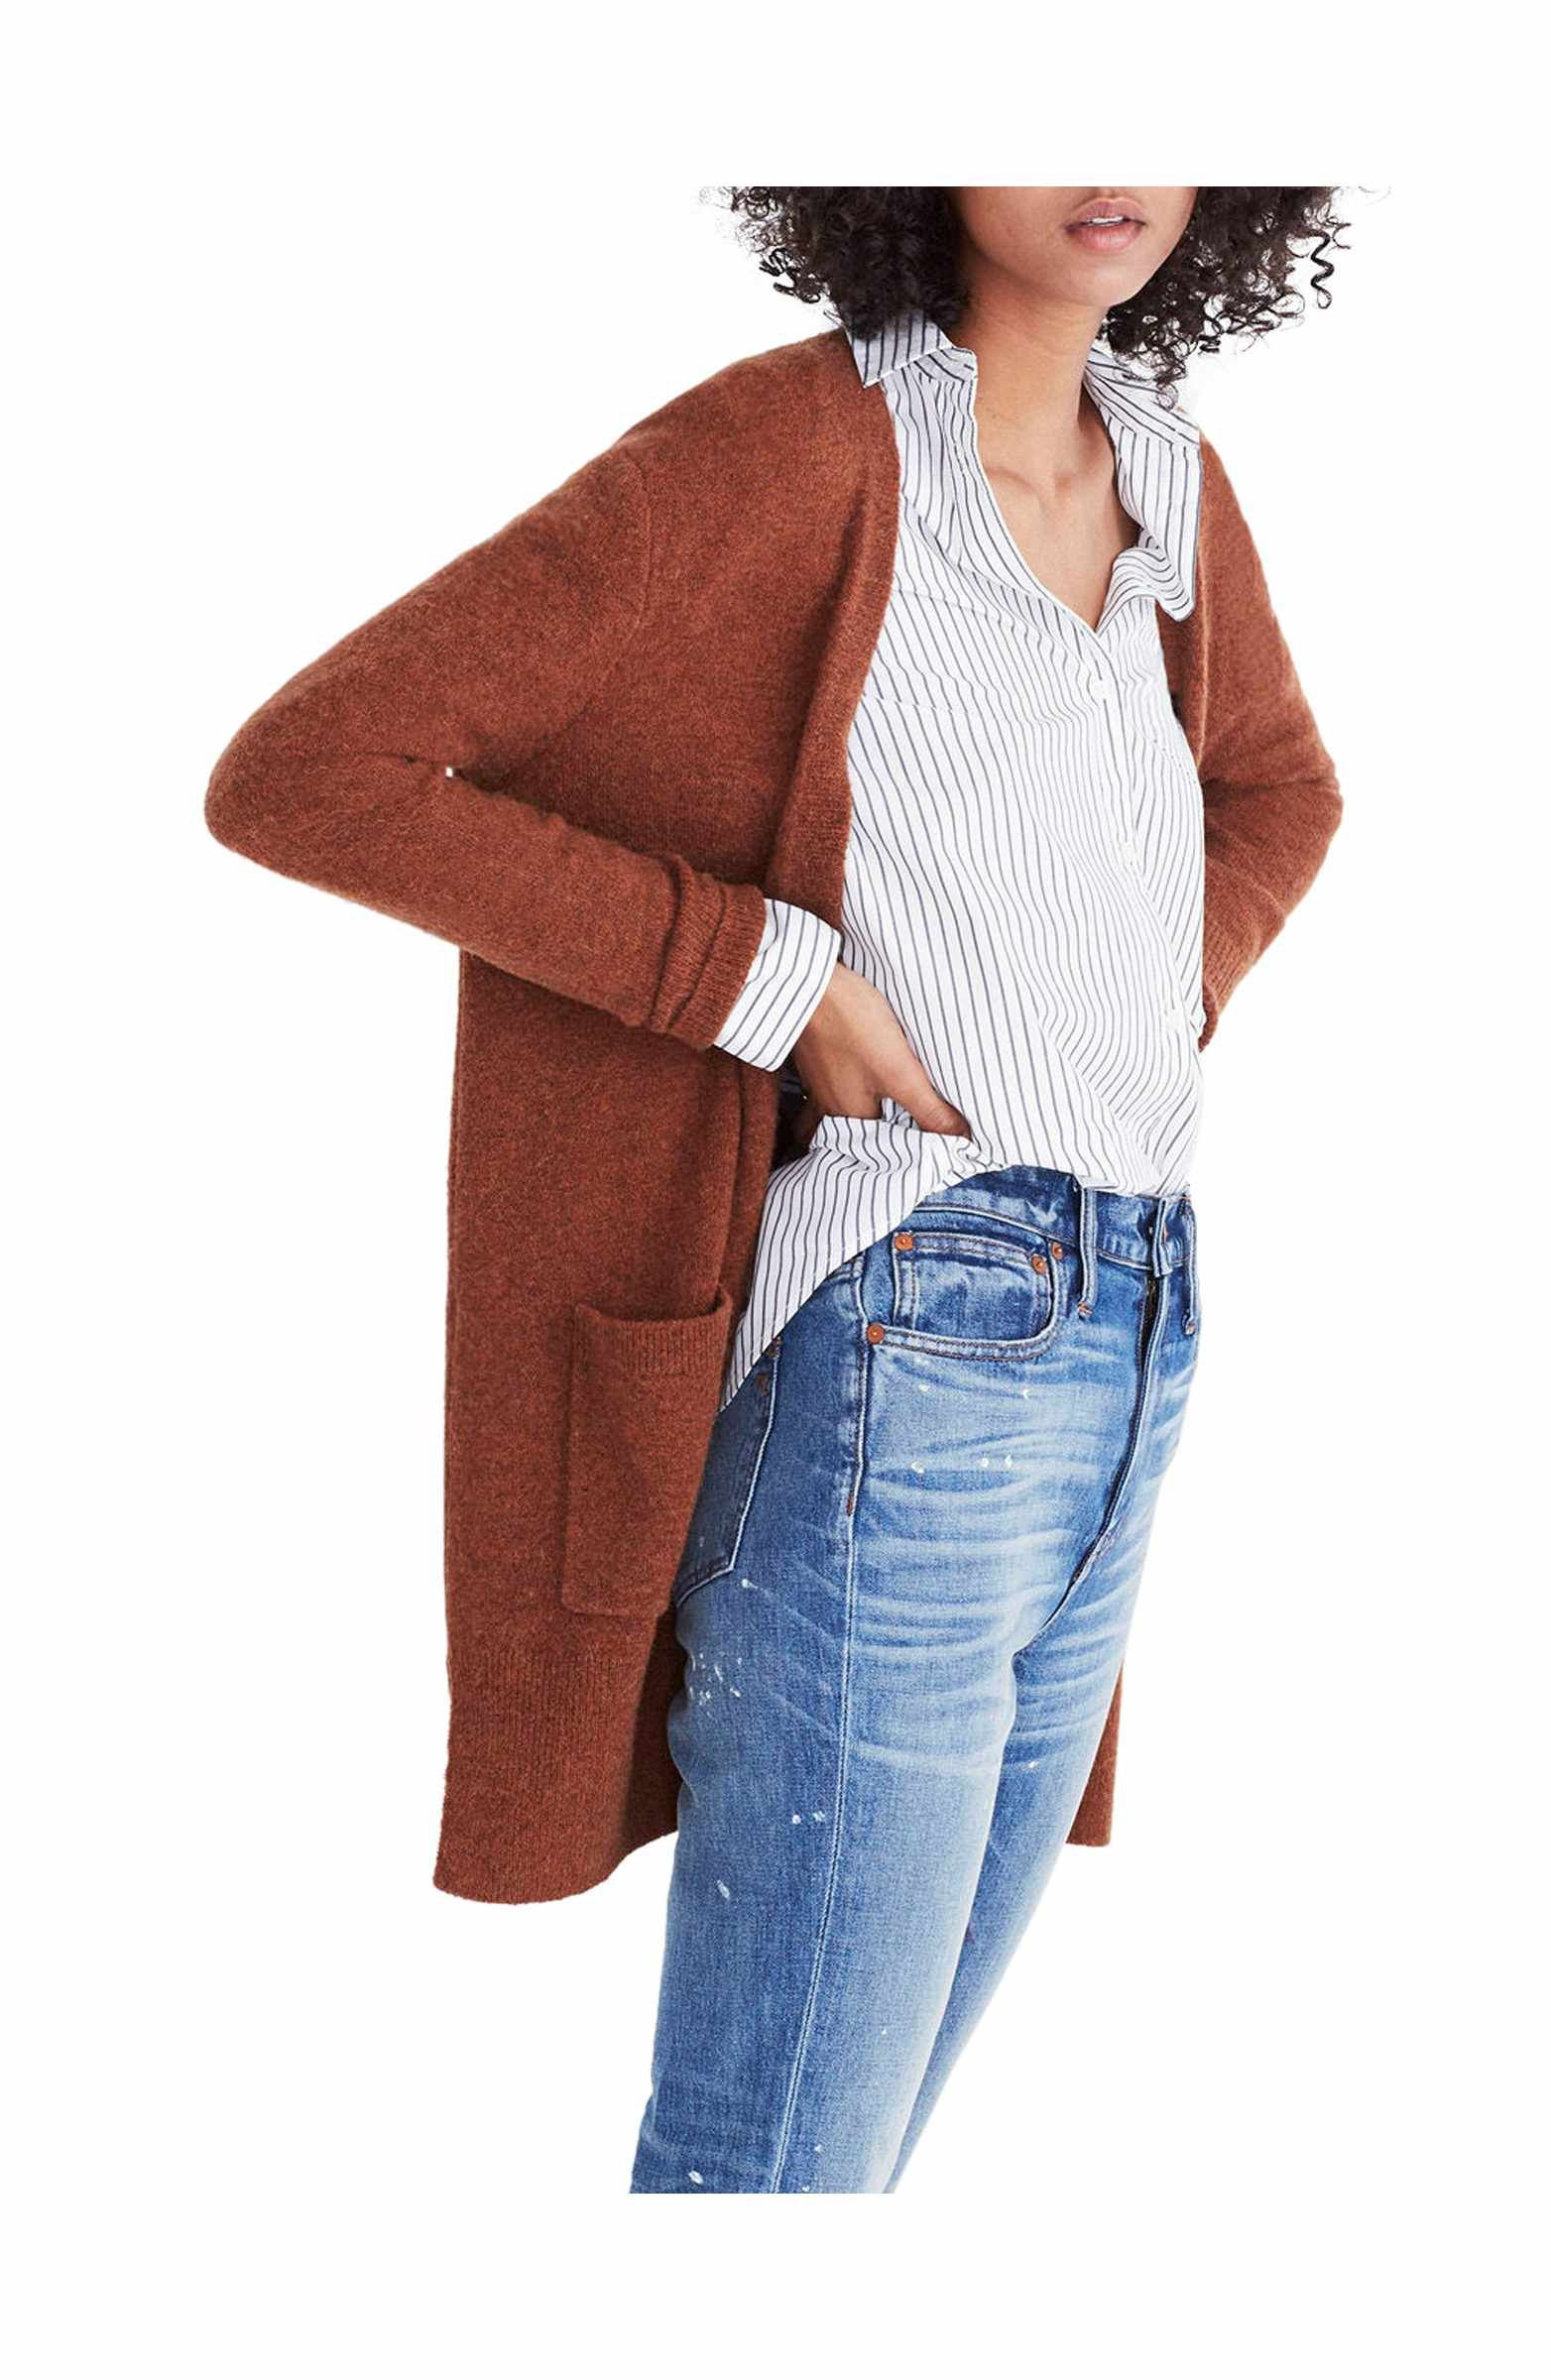 79fffbcca This cardigan and vertical stripe shirt! Love the rust color too ...